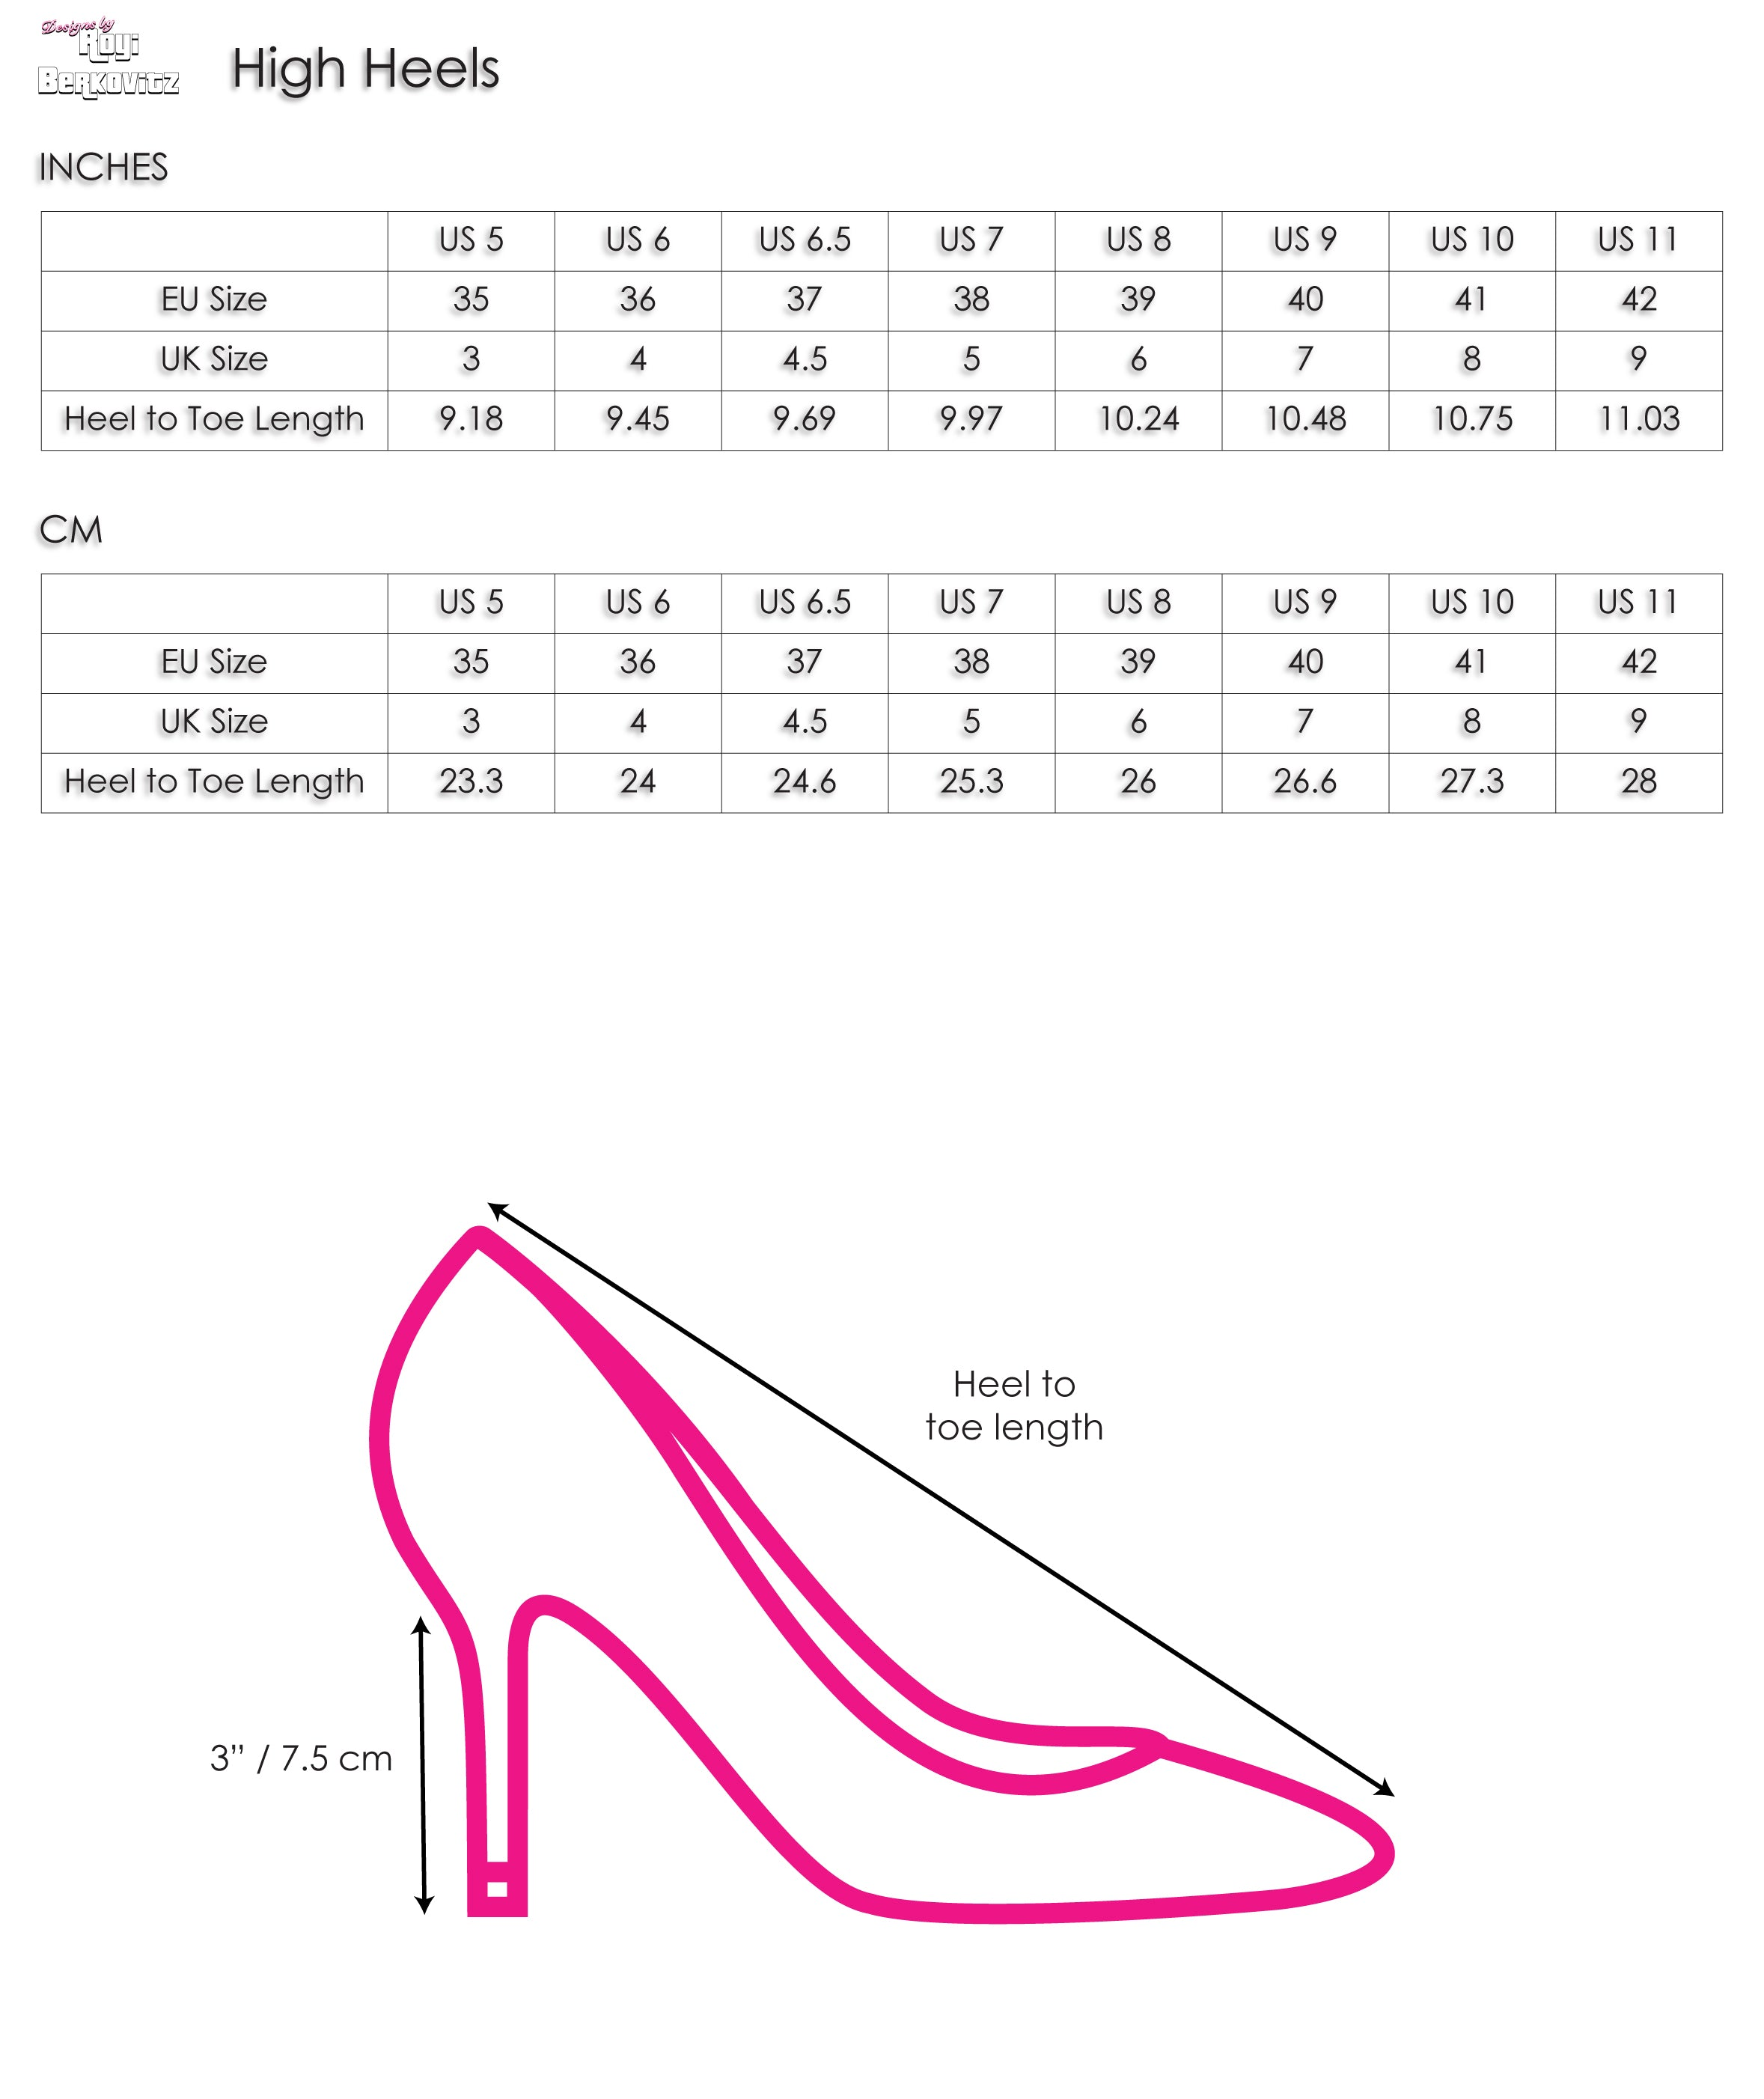 High Heels | Size Chart | Designs by Royi Berkovitz